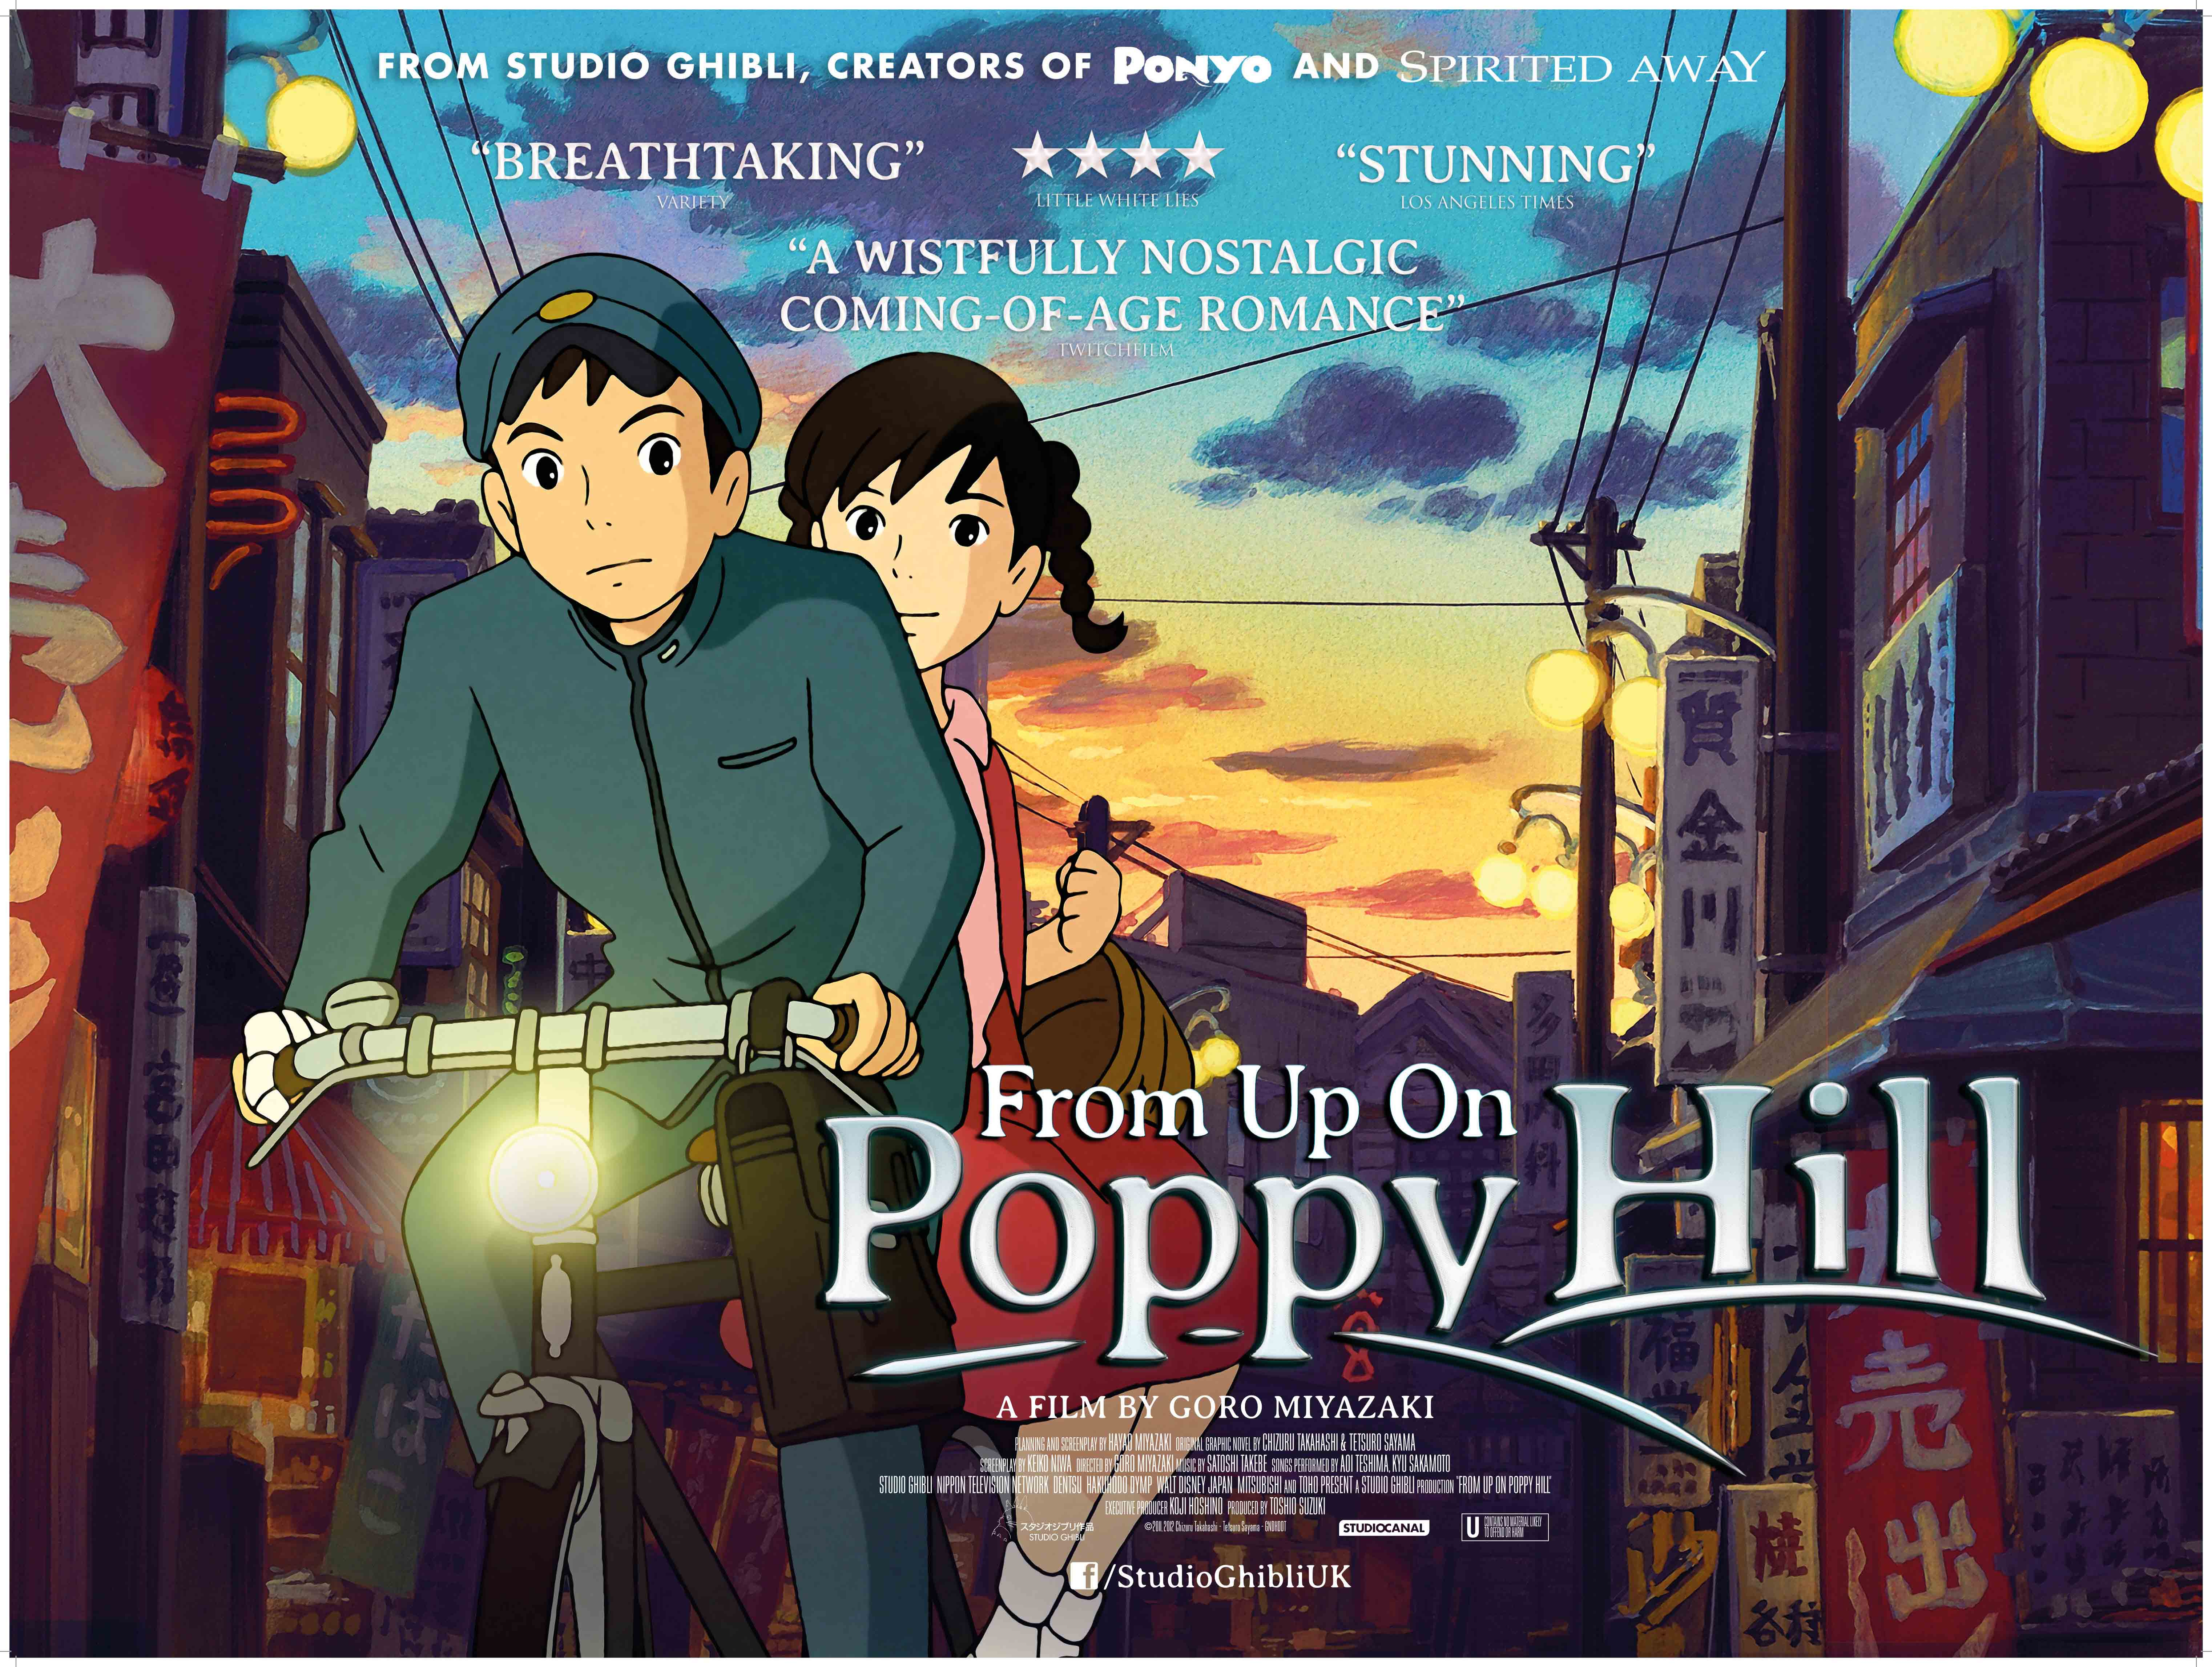 From-Up-On-Poppy-Hill-quad-poster.jpg